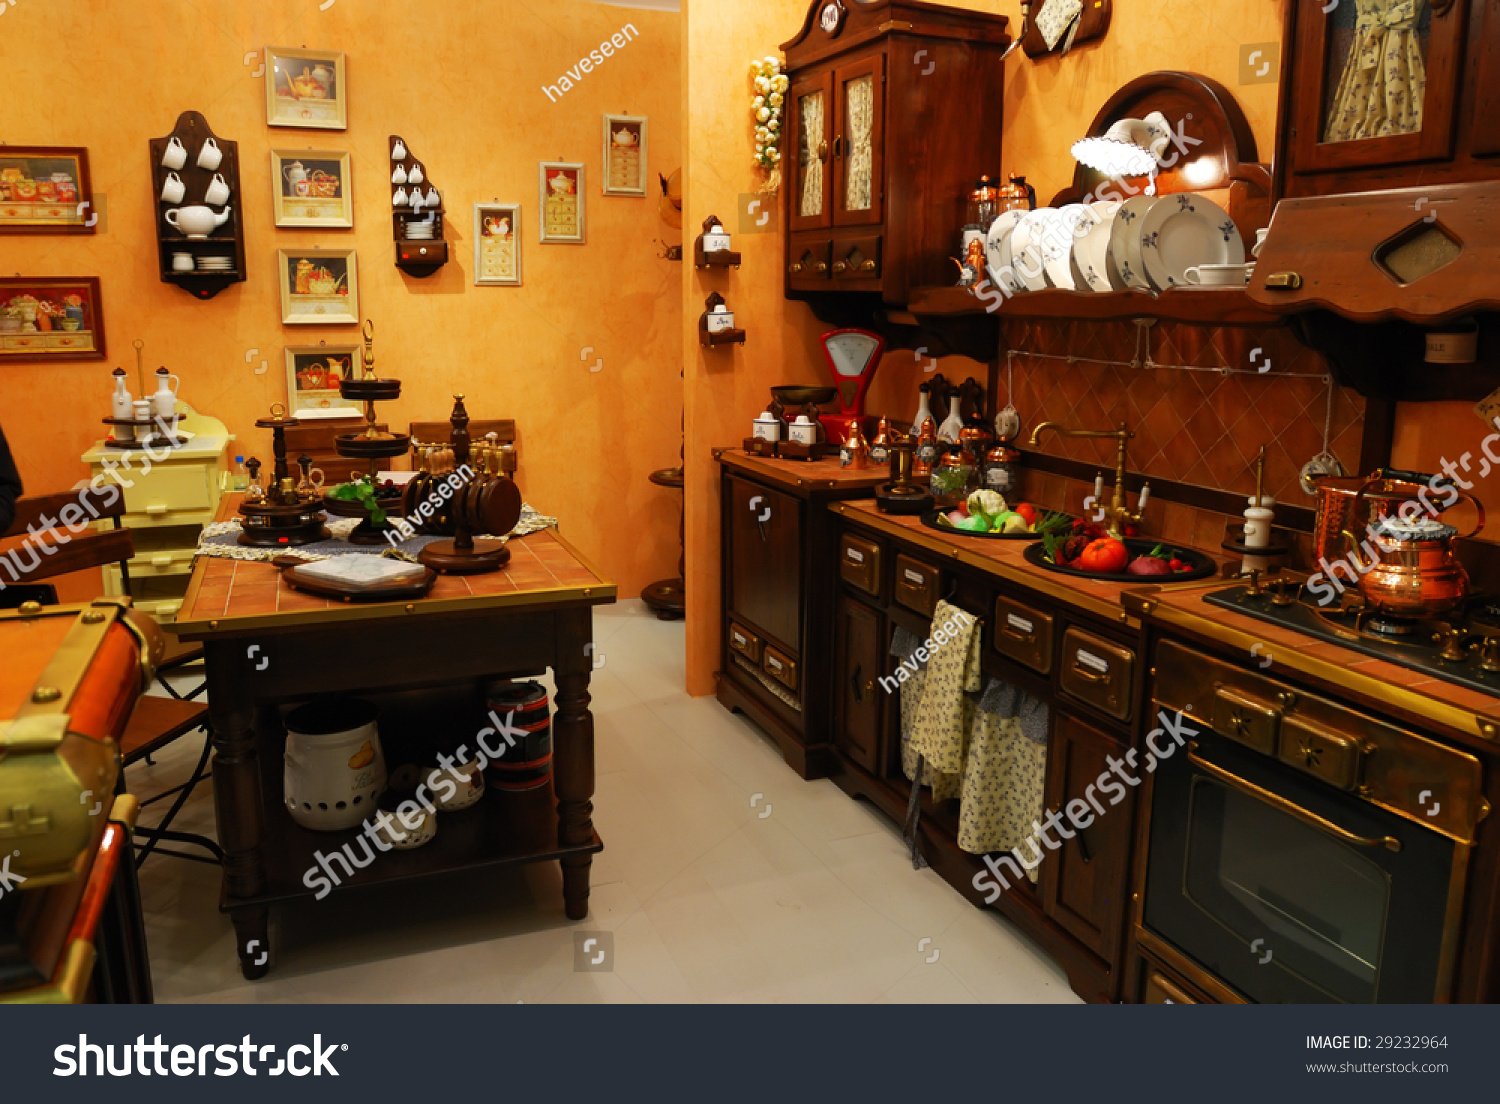 Old Fashioned Kitchen Classic Old Fashioned Kitchen Interior Stock Photo 29232964